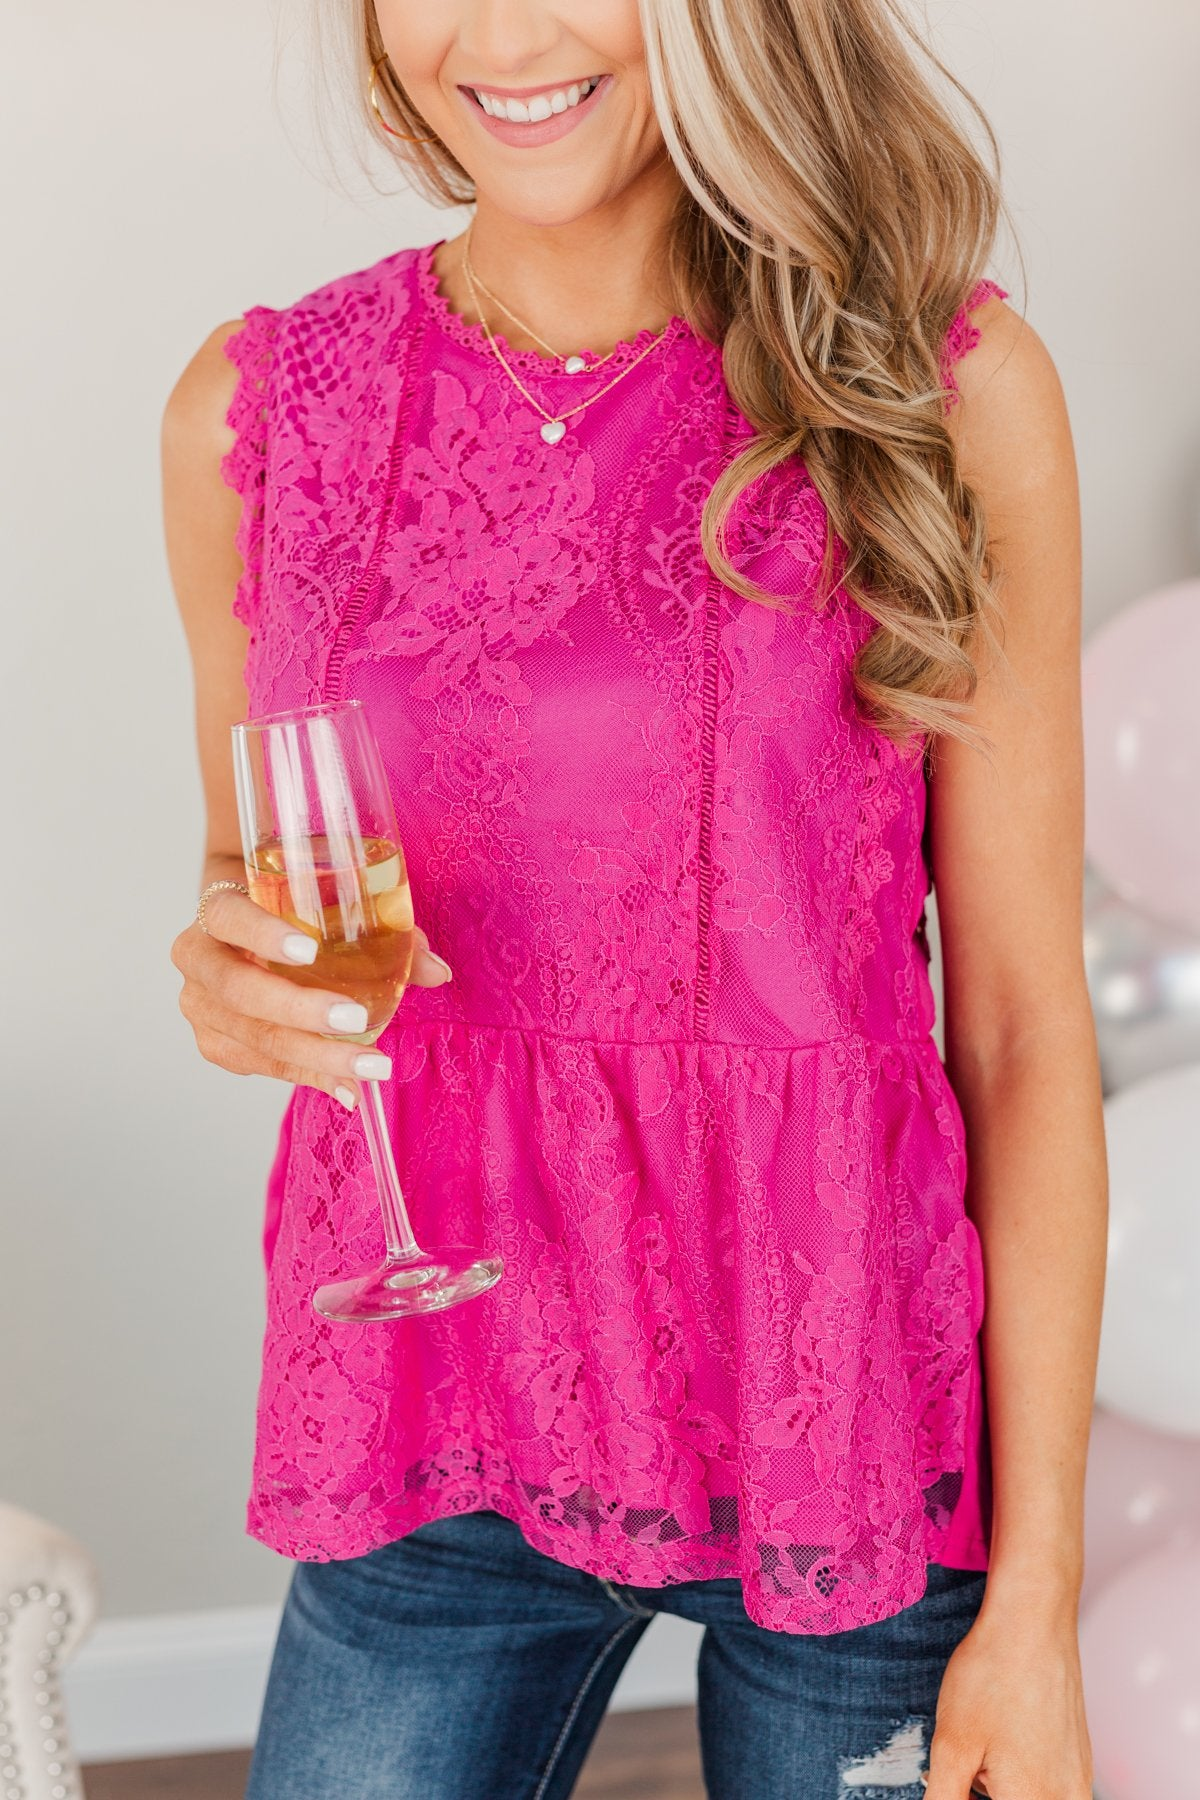 The Moment We Met Lace Sleeveless Blouse- Magenta